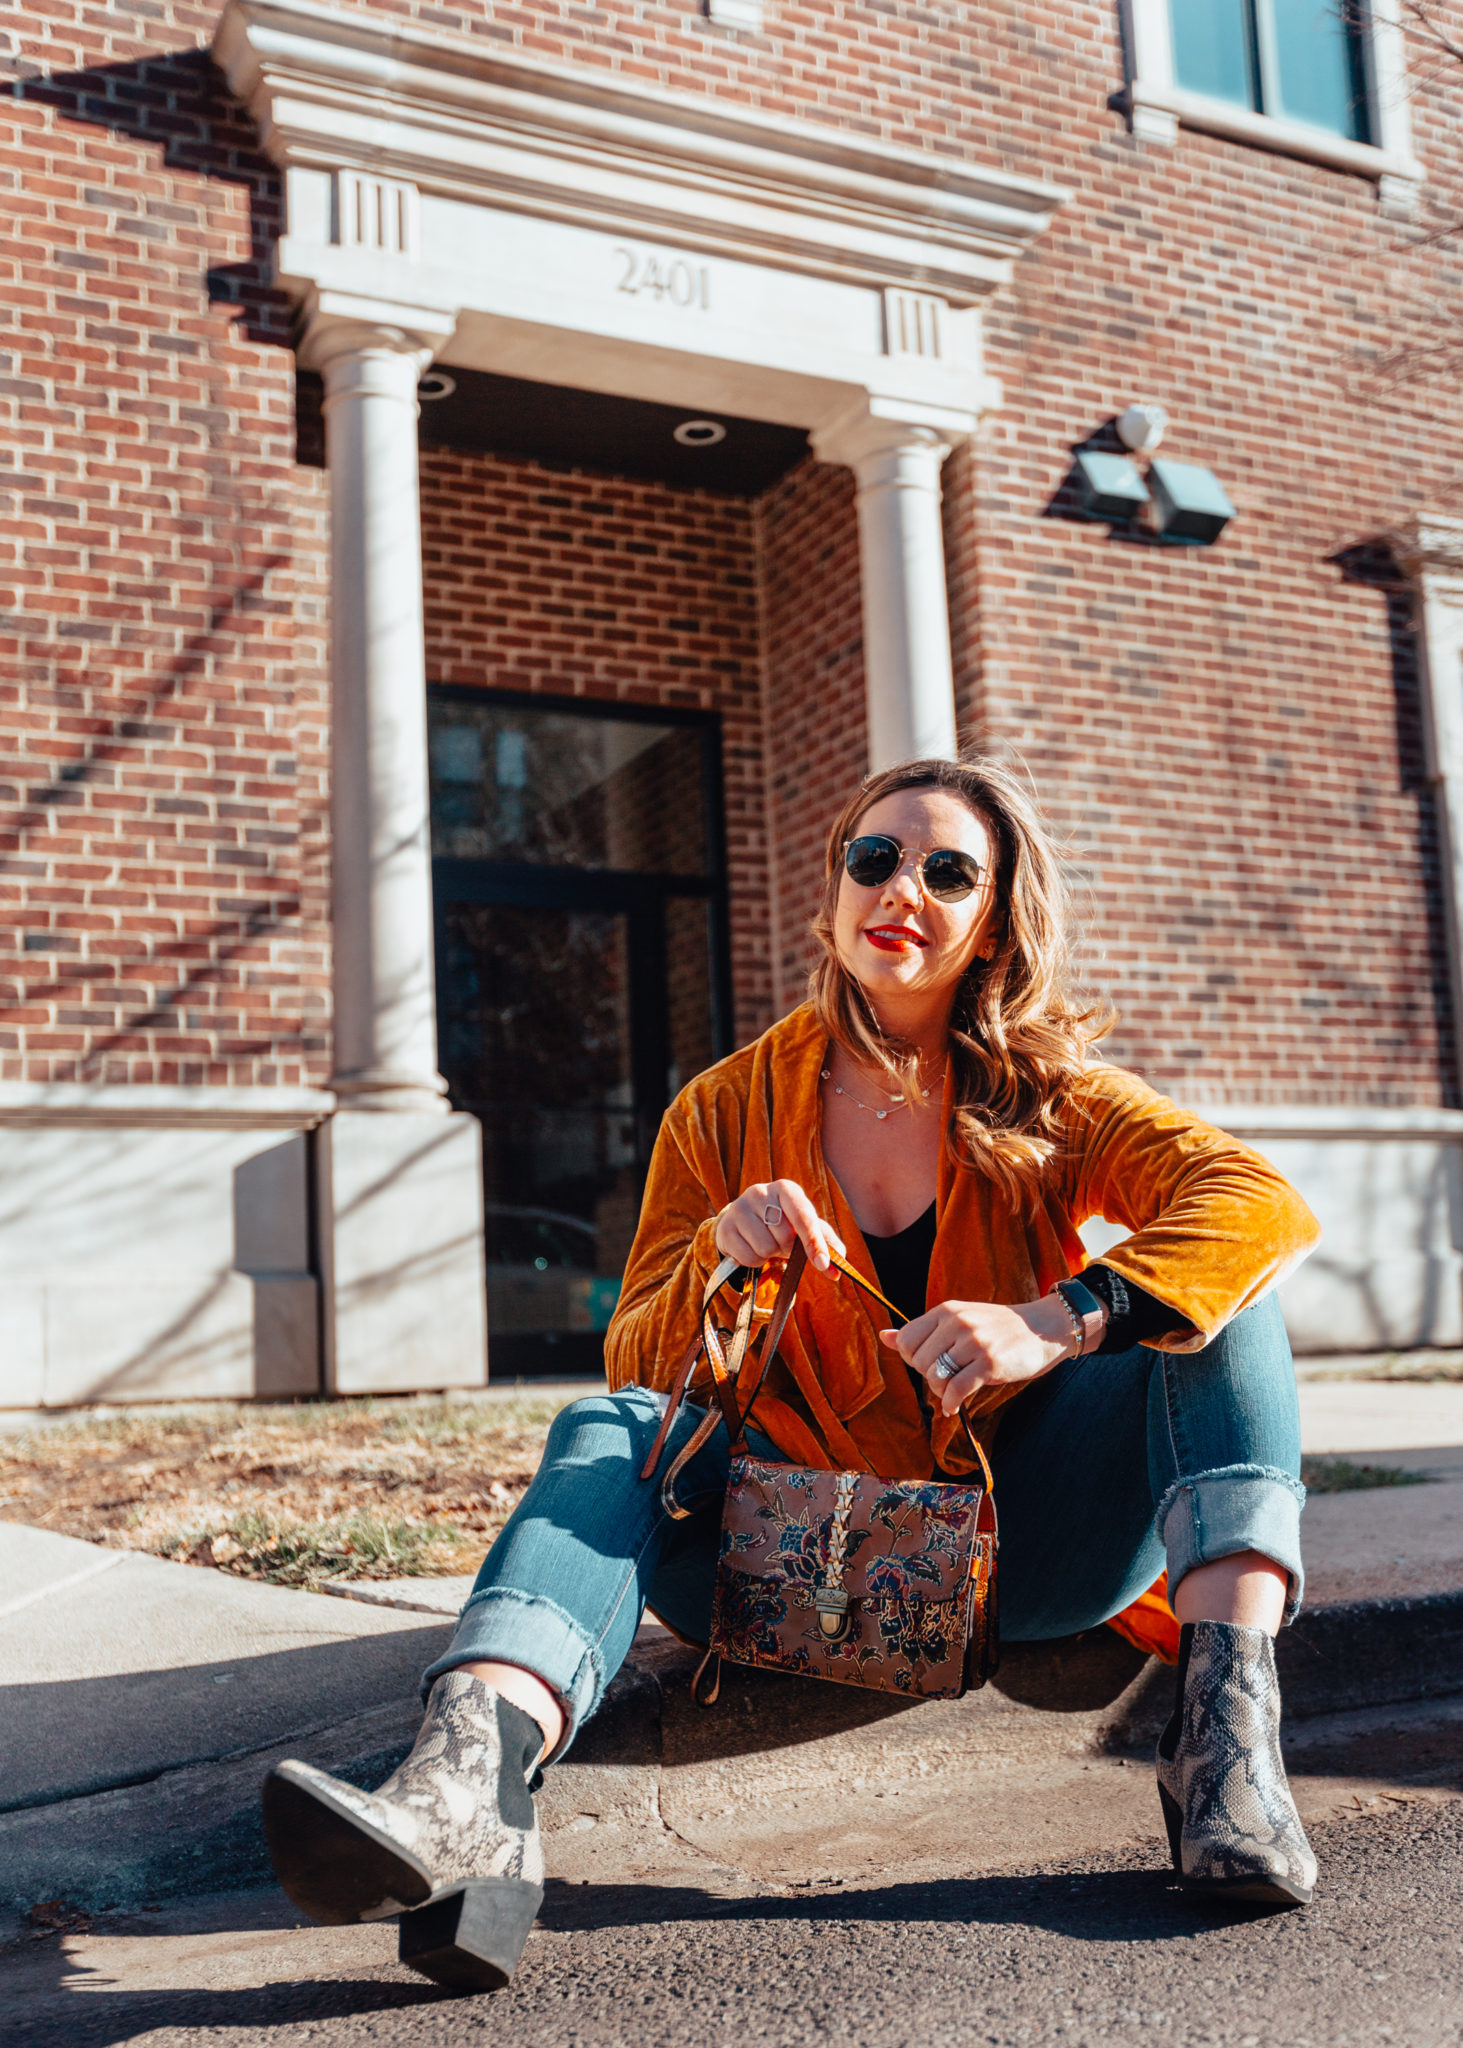 Patricia Nash Designs: An Accessories Brand That She Will Love! by popular Chicago fashion blog, Glass of Glam: image of a woman sitting outside and wearing an Amaryllis Draped in Velvet Cardigan, Nordstrom Ray-Ban Icons 53mm Retro Sunglasses, Target SUGARFIX by BaubleBar Druzy Stud Earring, 1822 Denim Taylor Destructed Roll Cuff Crop Jeans In Gerard, Sephora LANCÔME L'Absolu Rouge Lipstick, and holding a Patricia Nash French Tapestry Bianco Leather Crossbody.